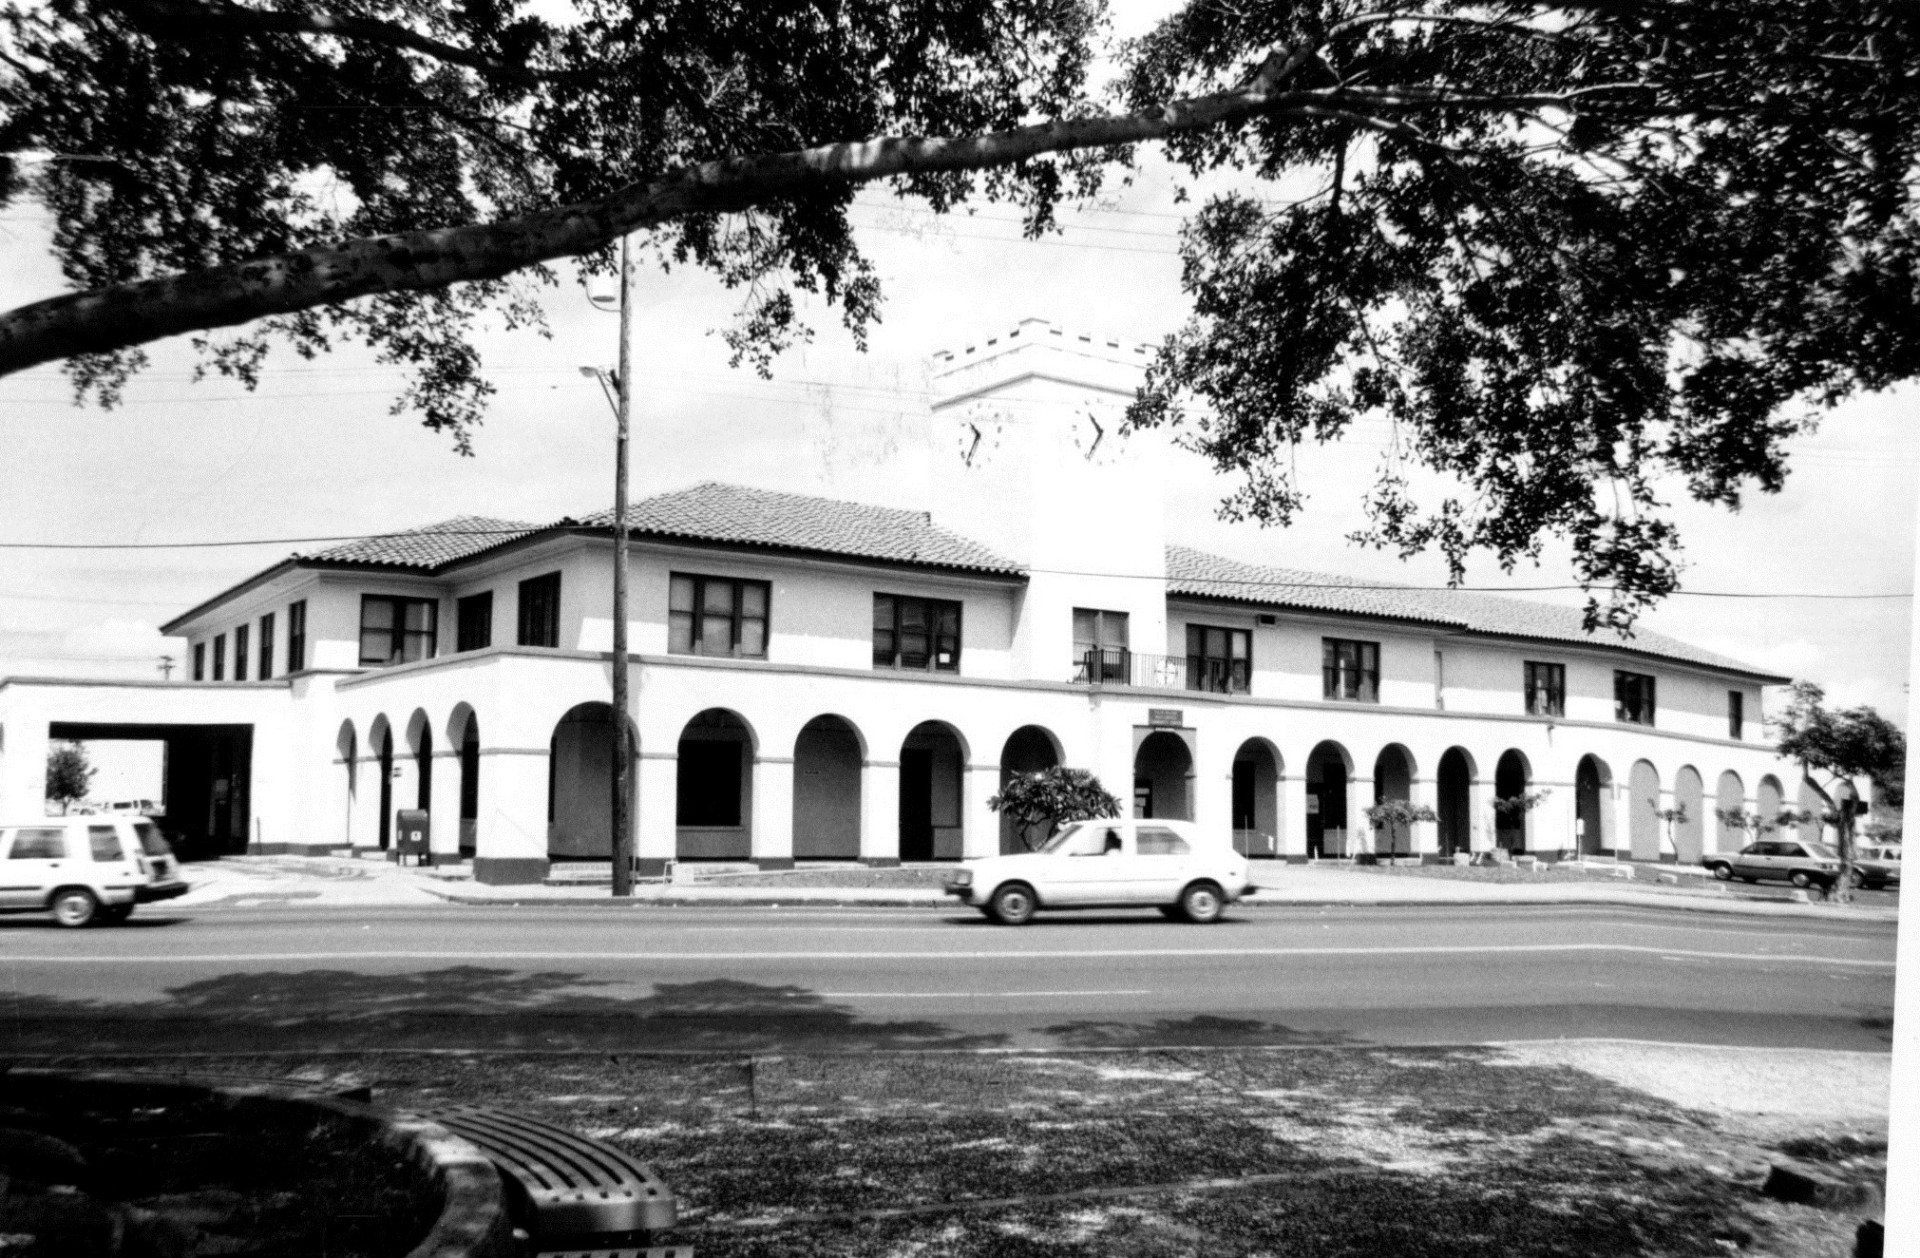 Oahu Railway & Land Co. Depot & Document Storage Building